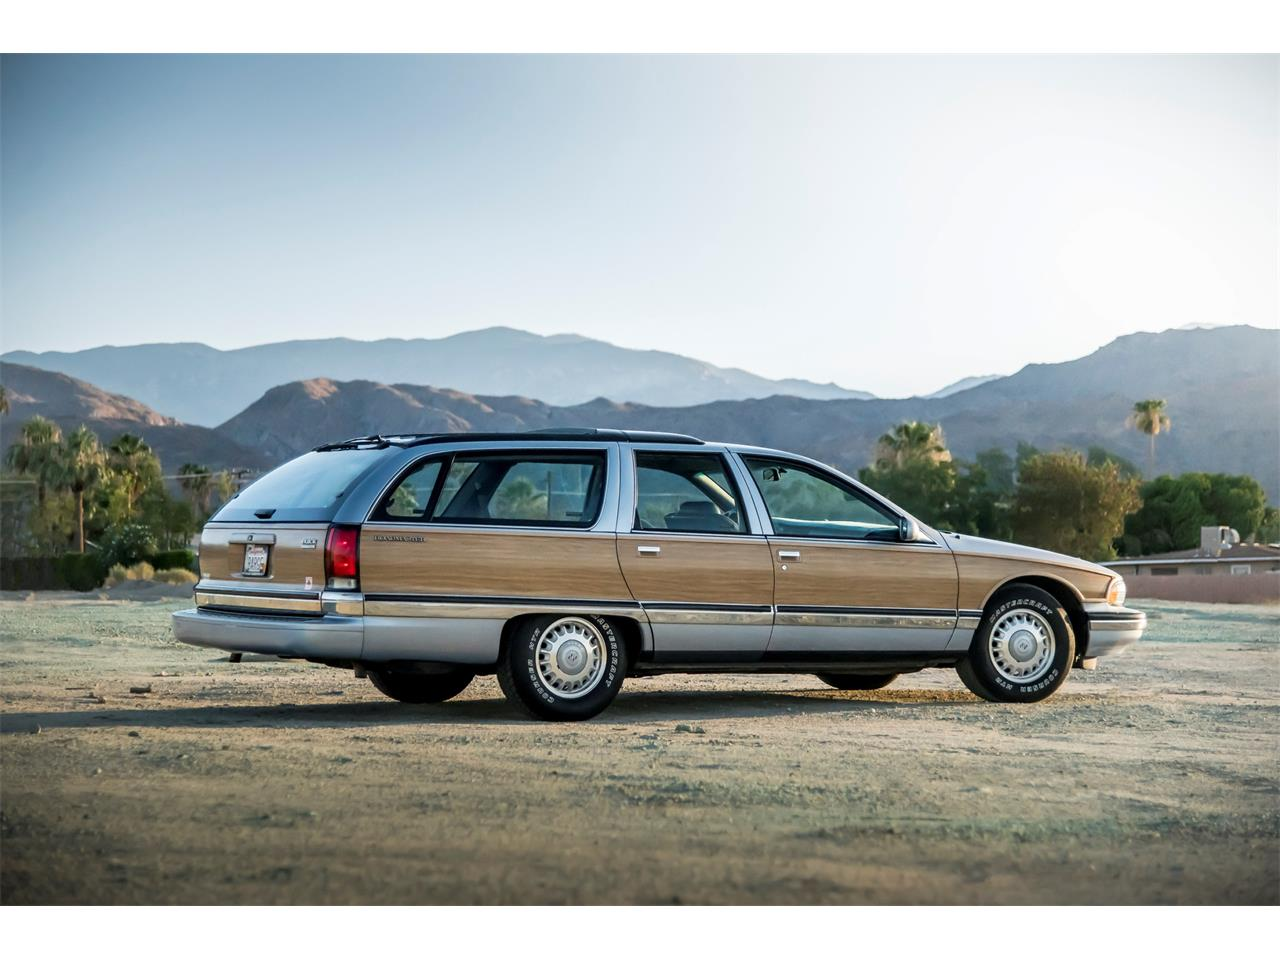 1995 Buick Roadmaster for sale in Cathedral City, CA – photo 5